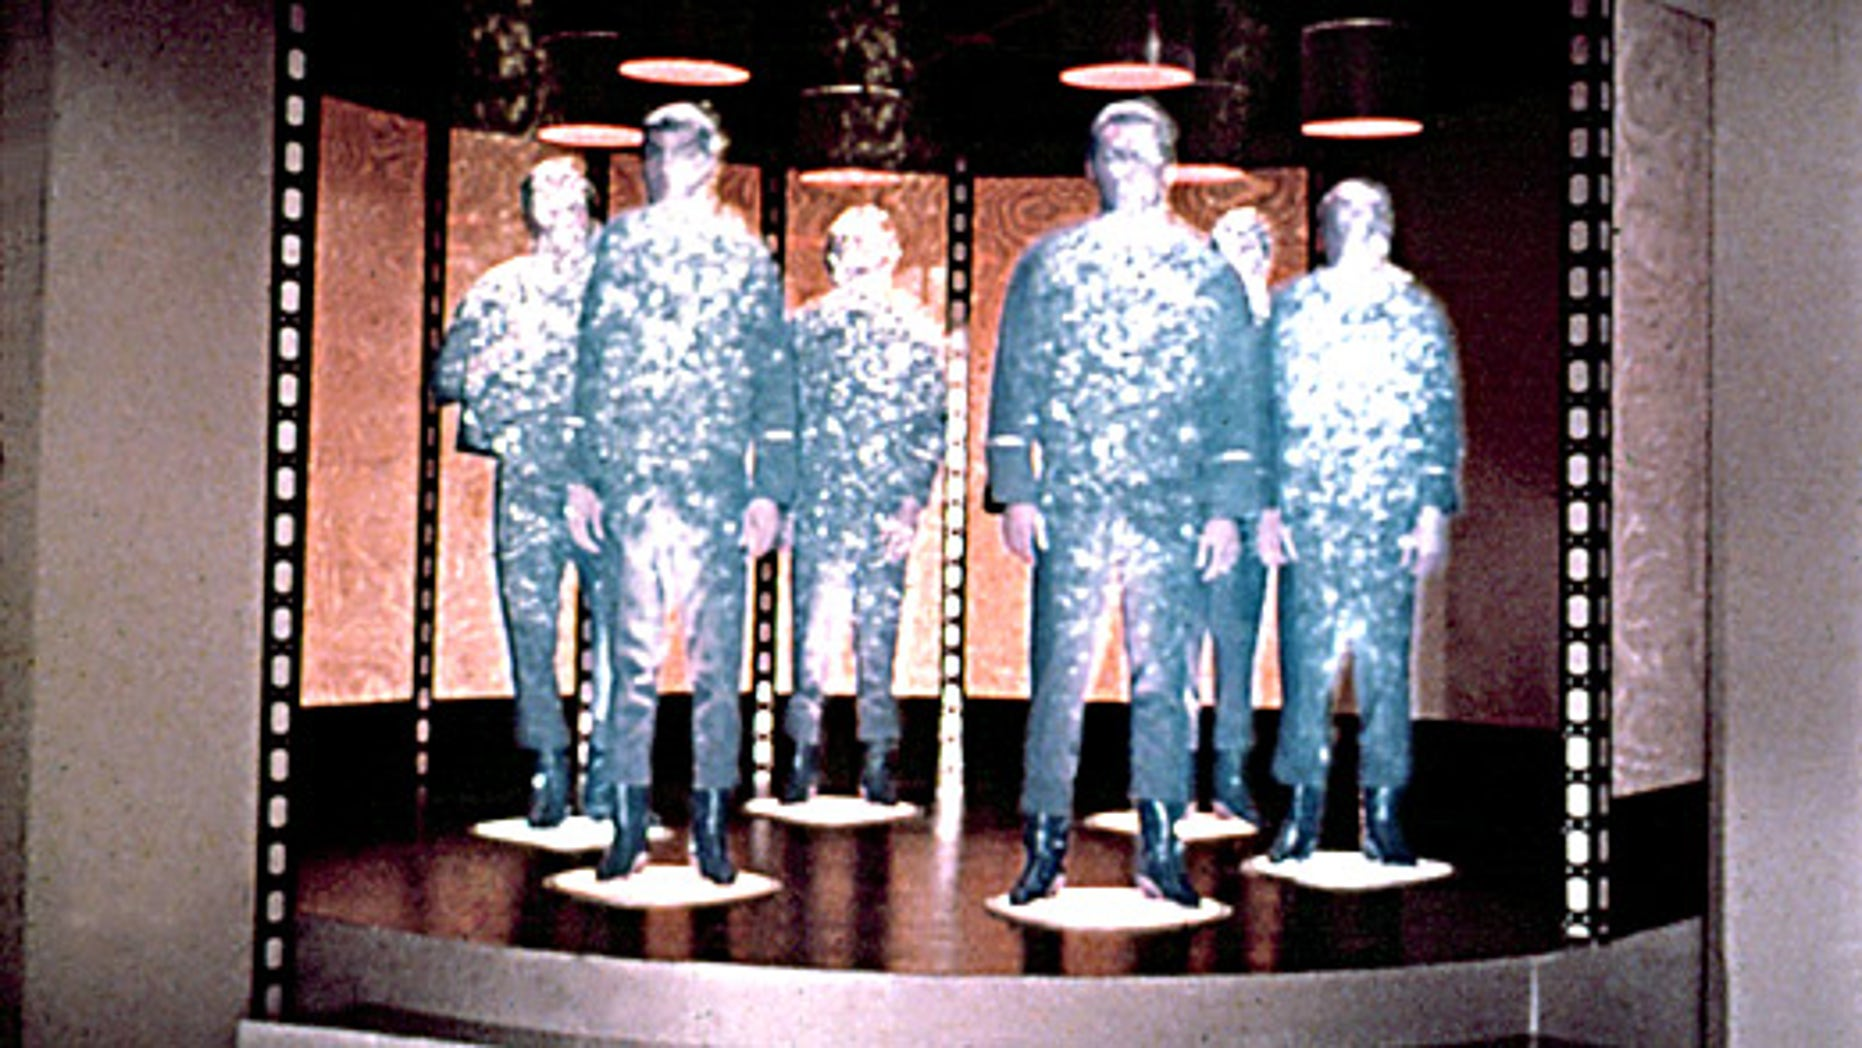 Crew members on the Starship Enterprise beamed to alien planets via teleporters. Now scientists are perfecting a way to communicate via a similar technology.